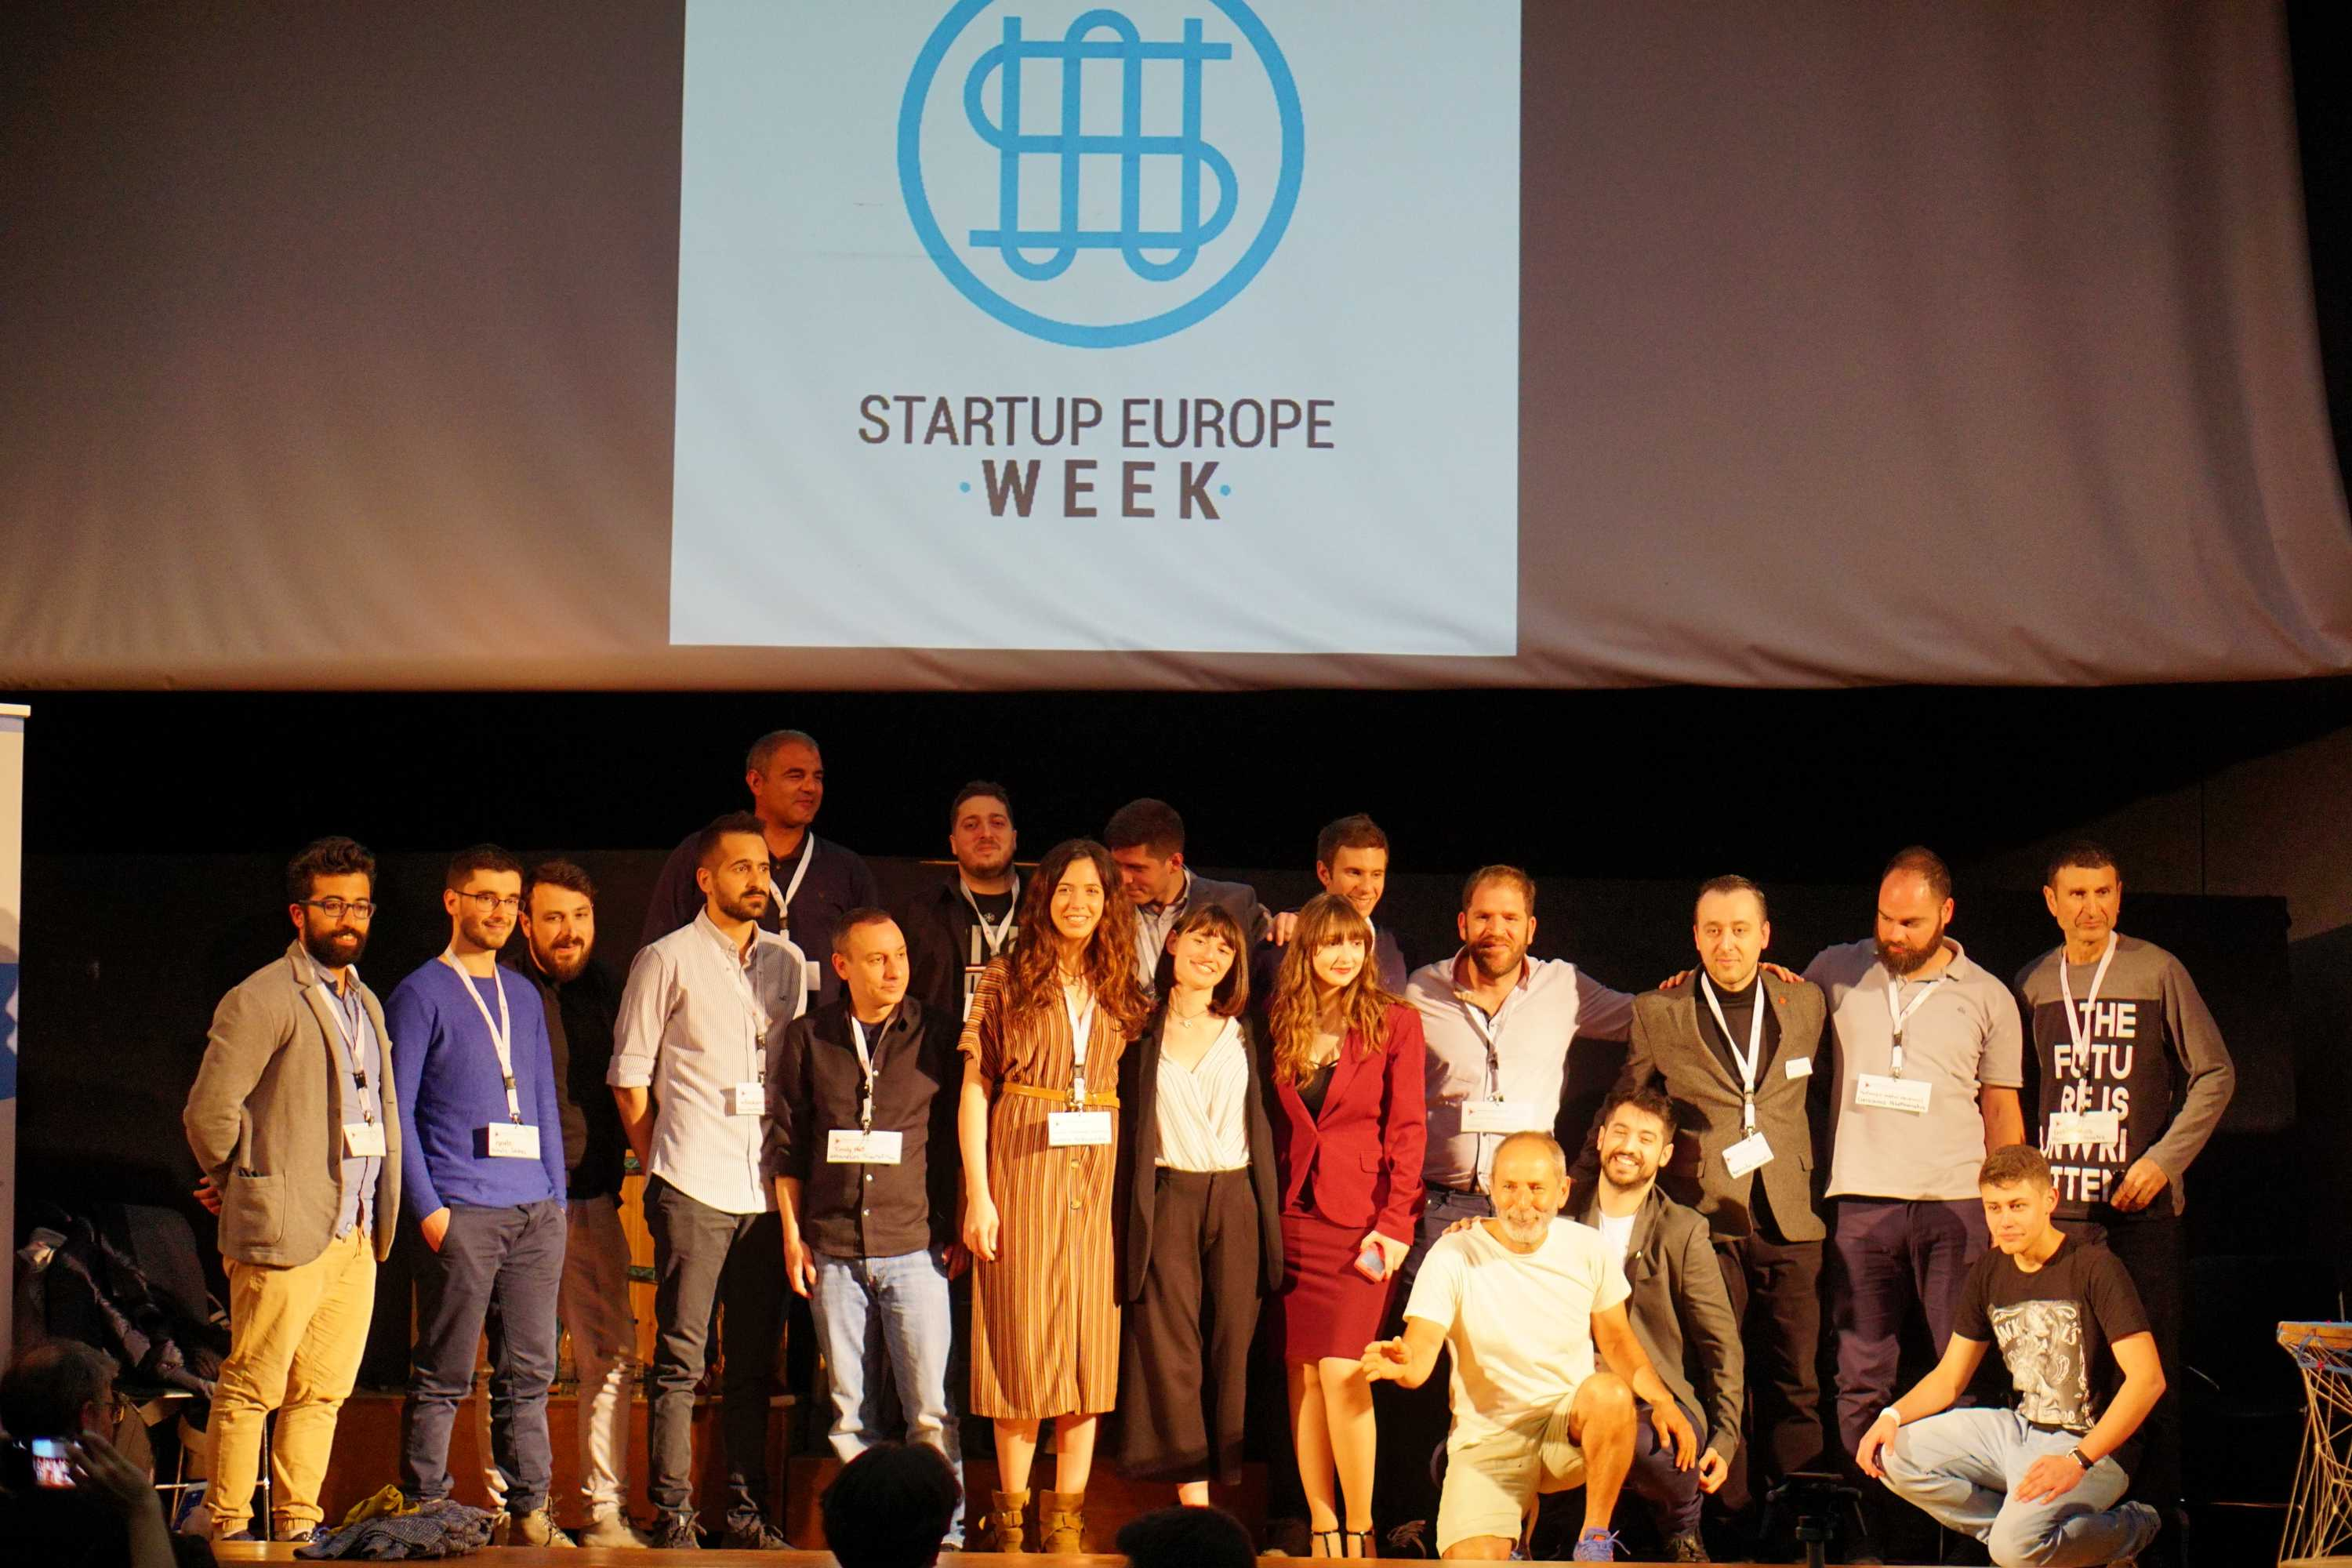 Startups Pitch, Startup Europe Week Crete